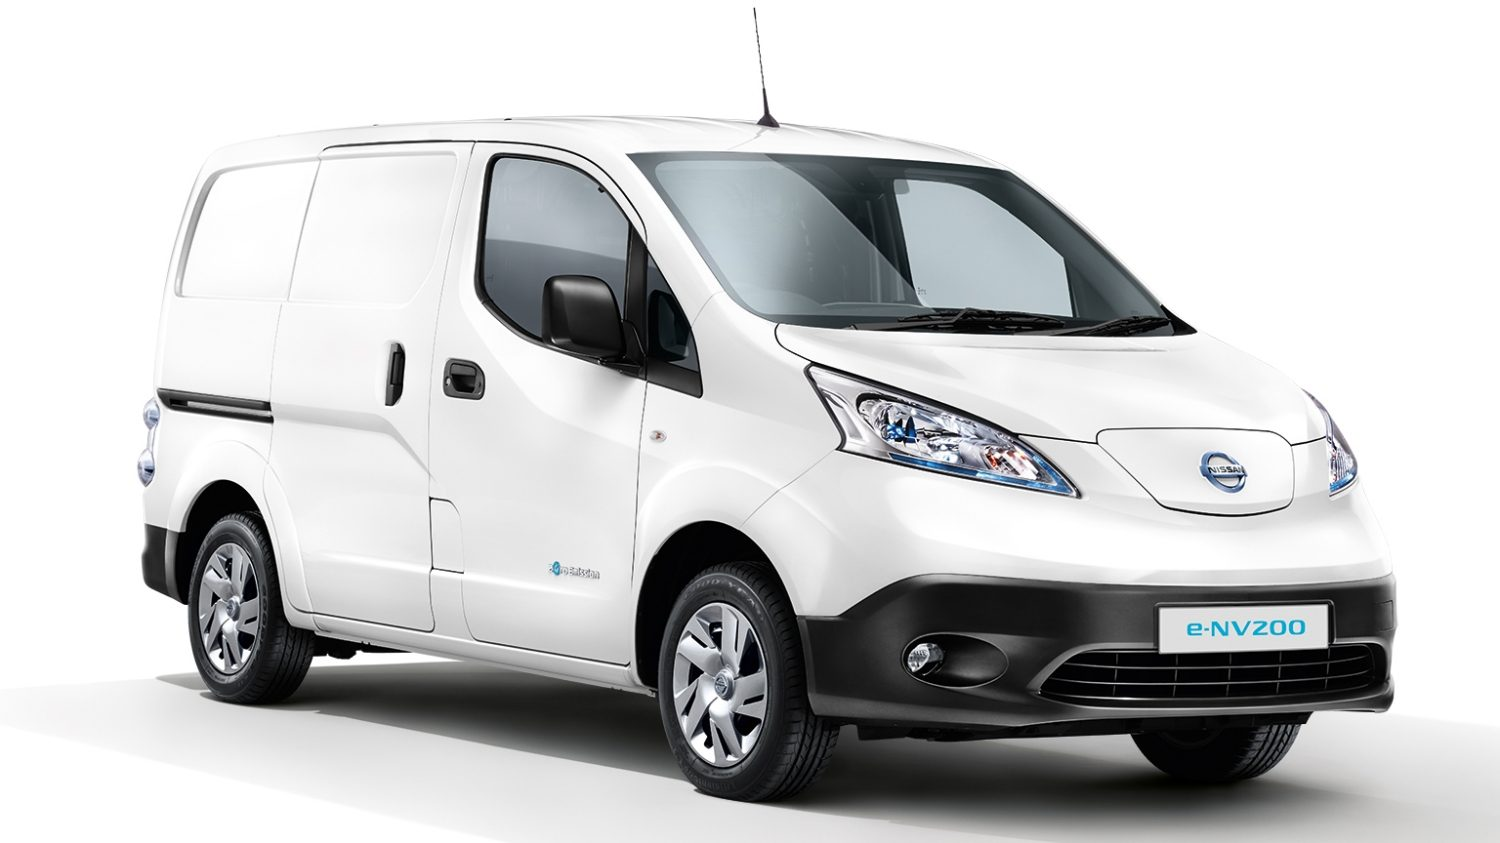 Nissan e-NV200 Acenta - 3/4 front view